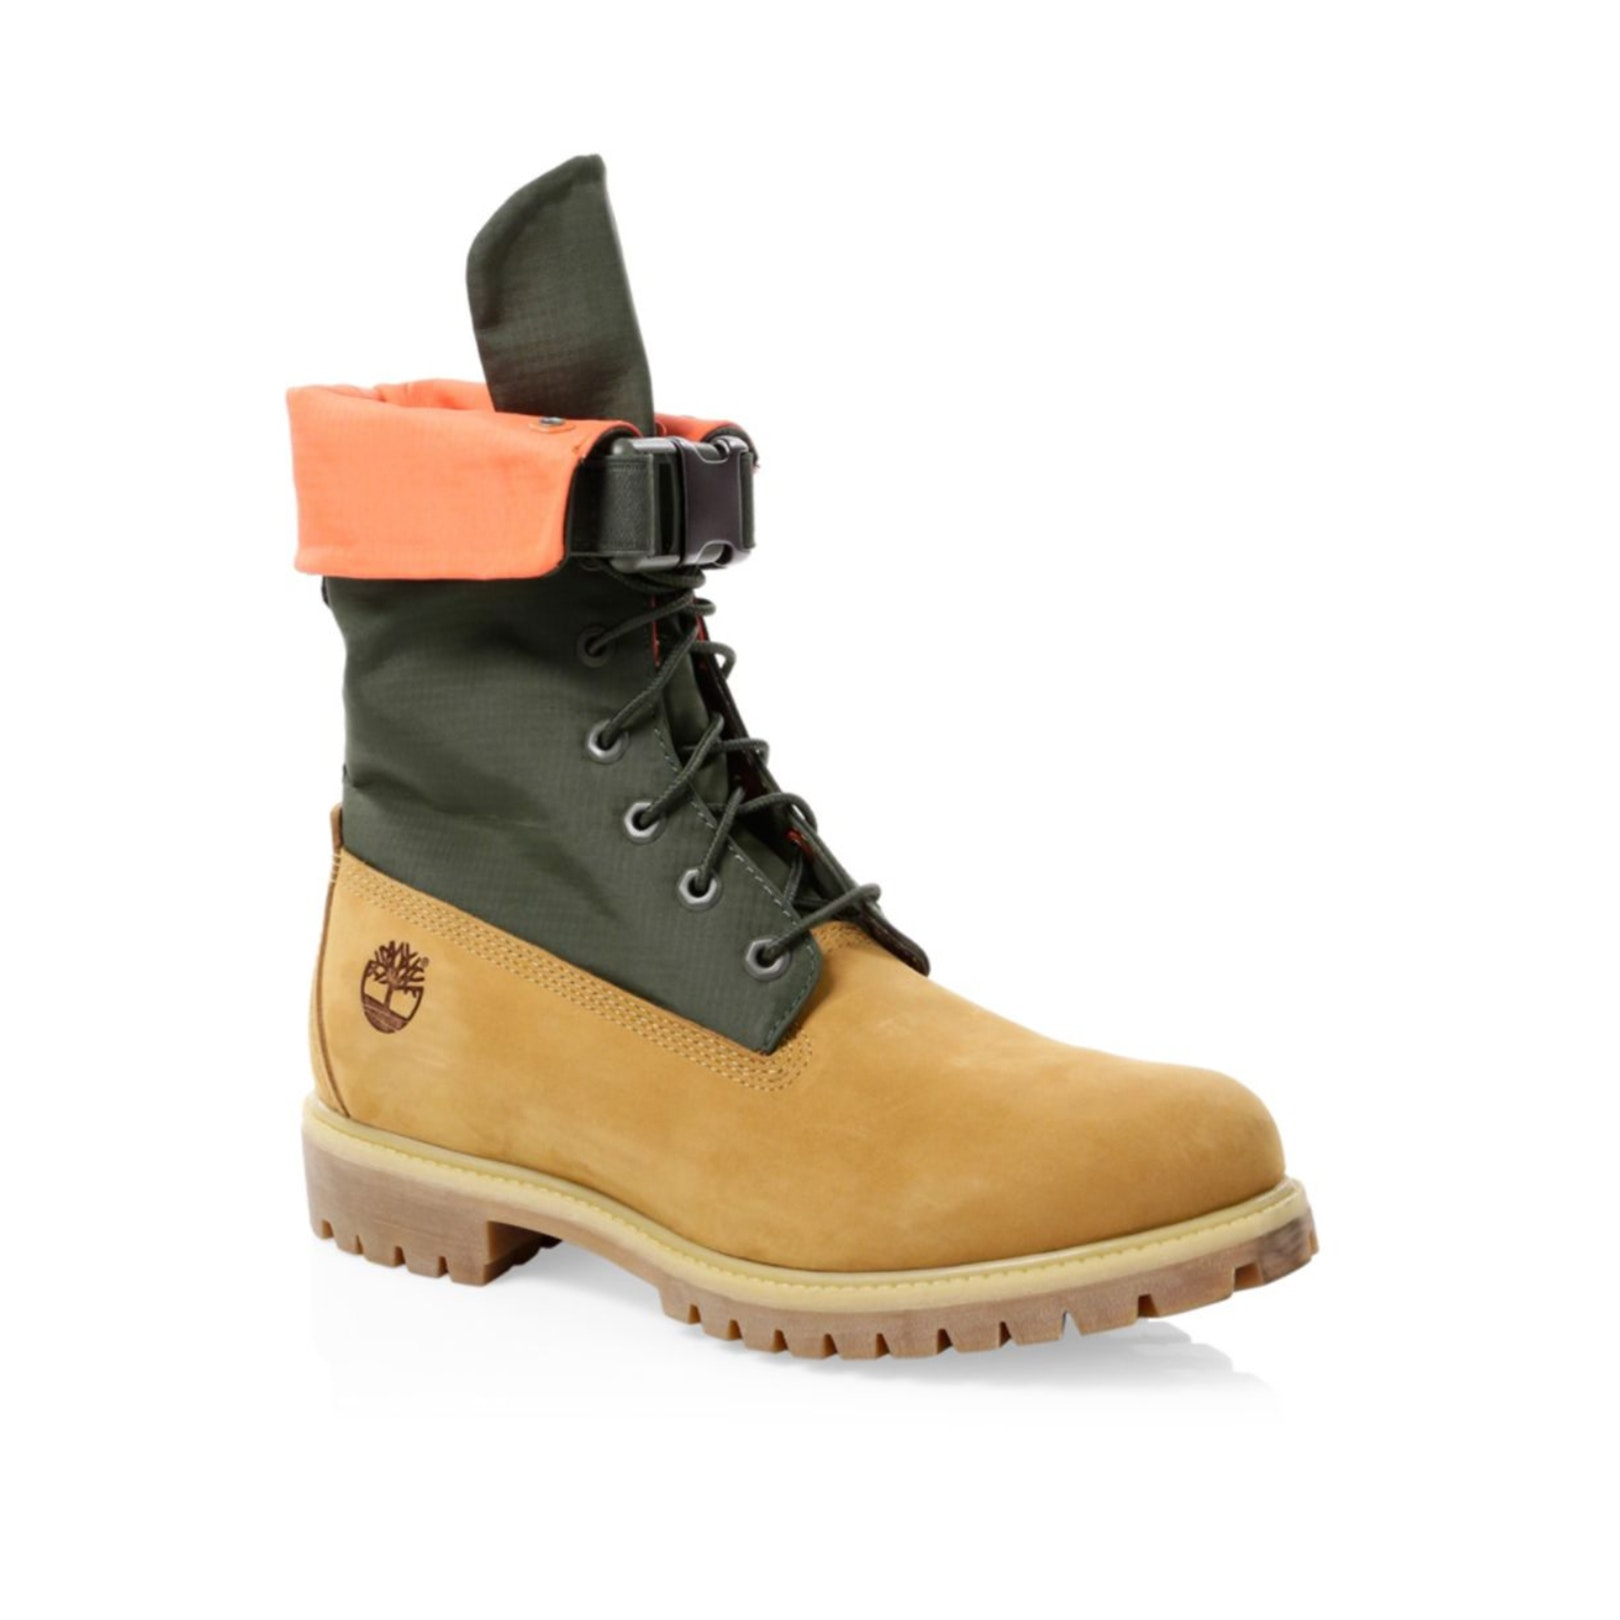 Timberland Boot Company Gaiter 6 Inch Leather Boots